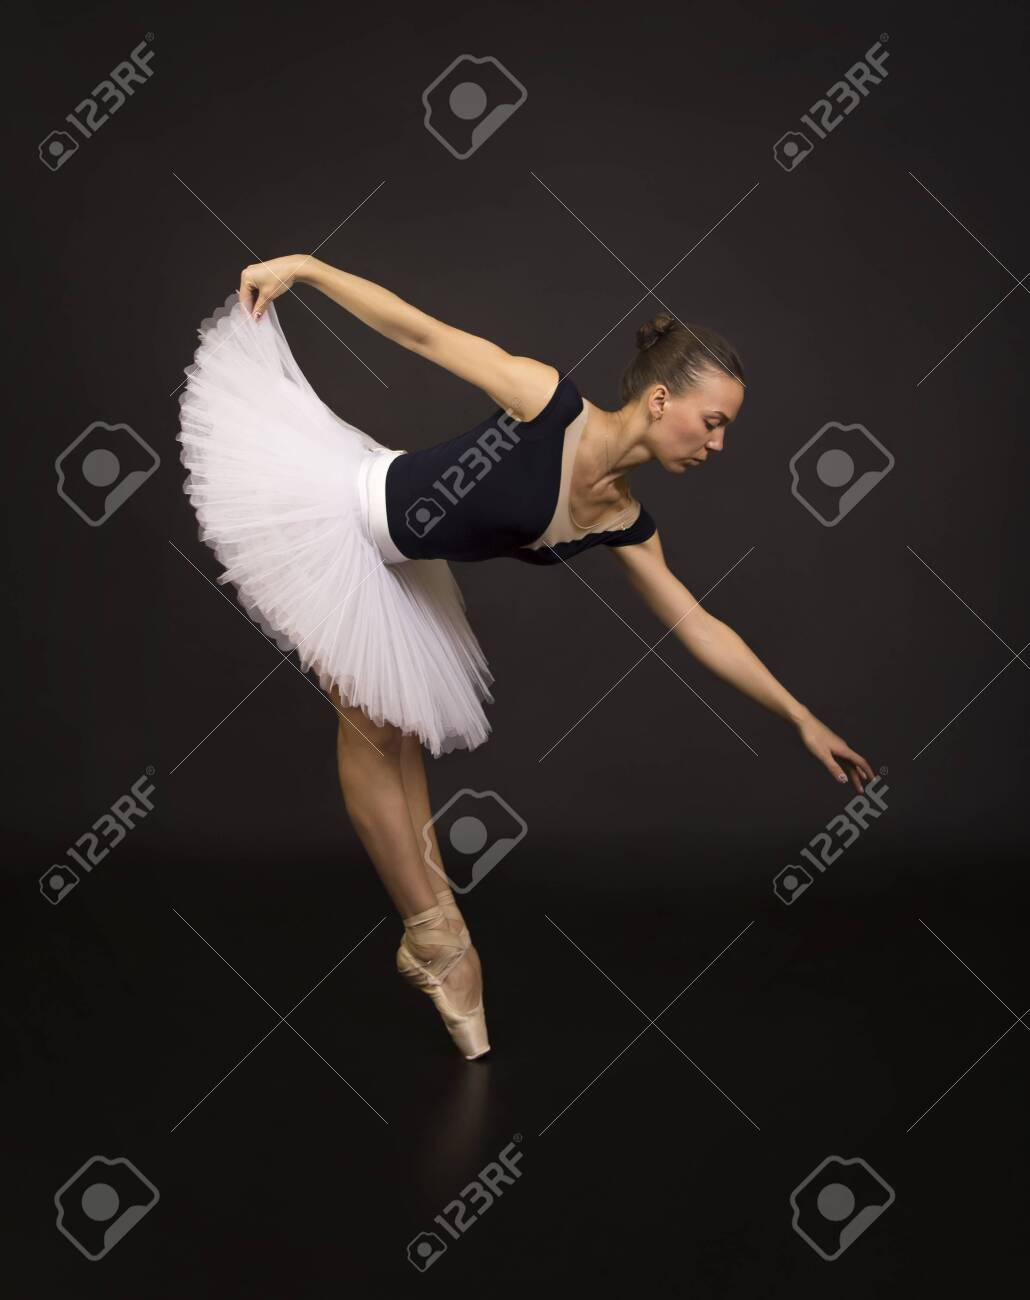 Gorgeous Ballerina In A White Tutu Dancing Ballet Studio Shooting 1030x1300